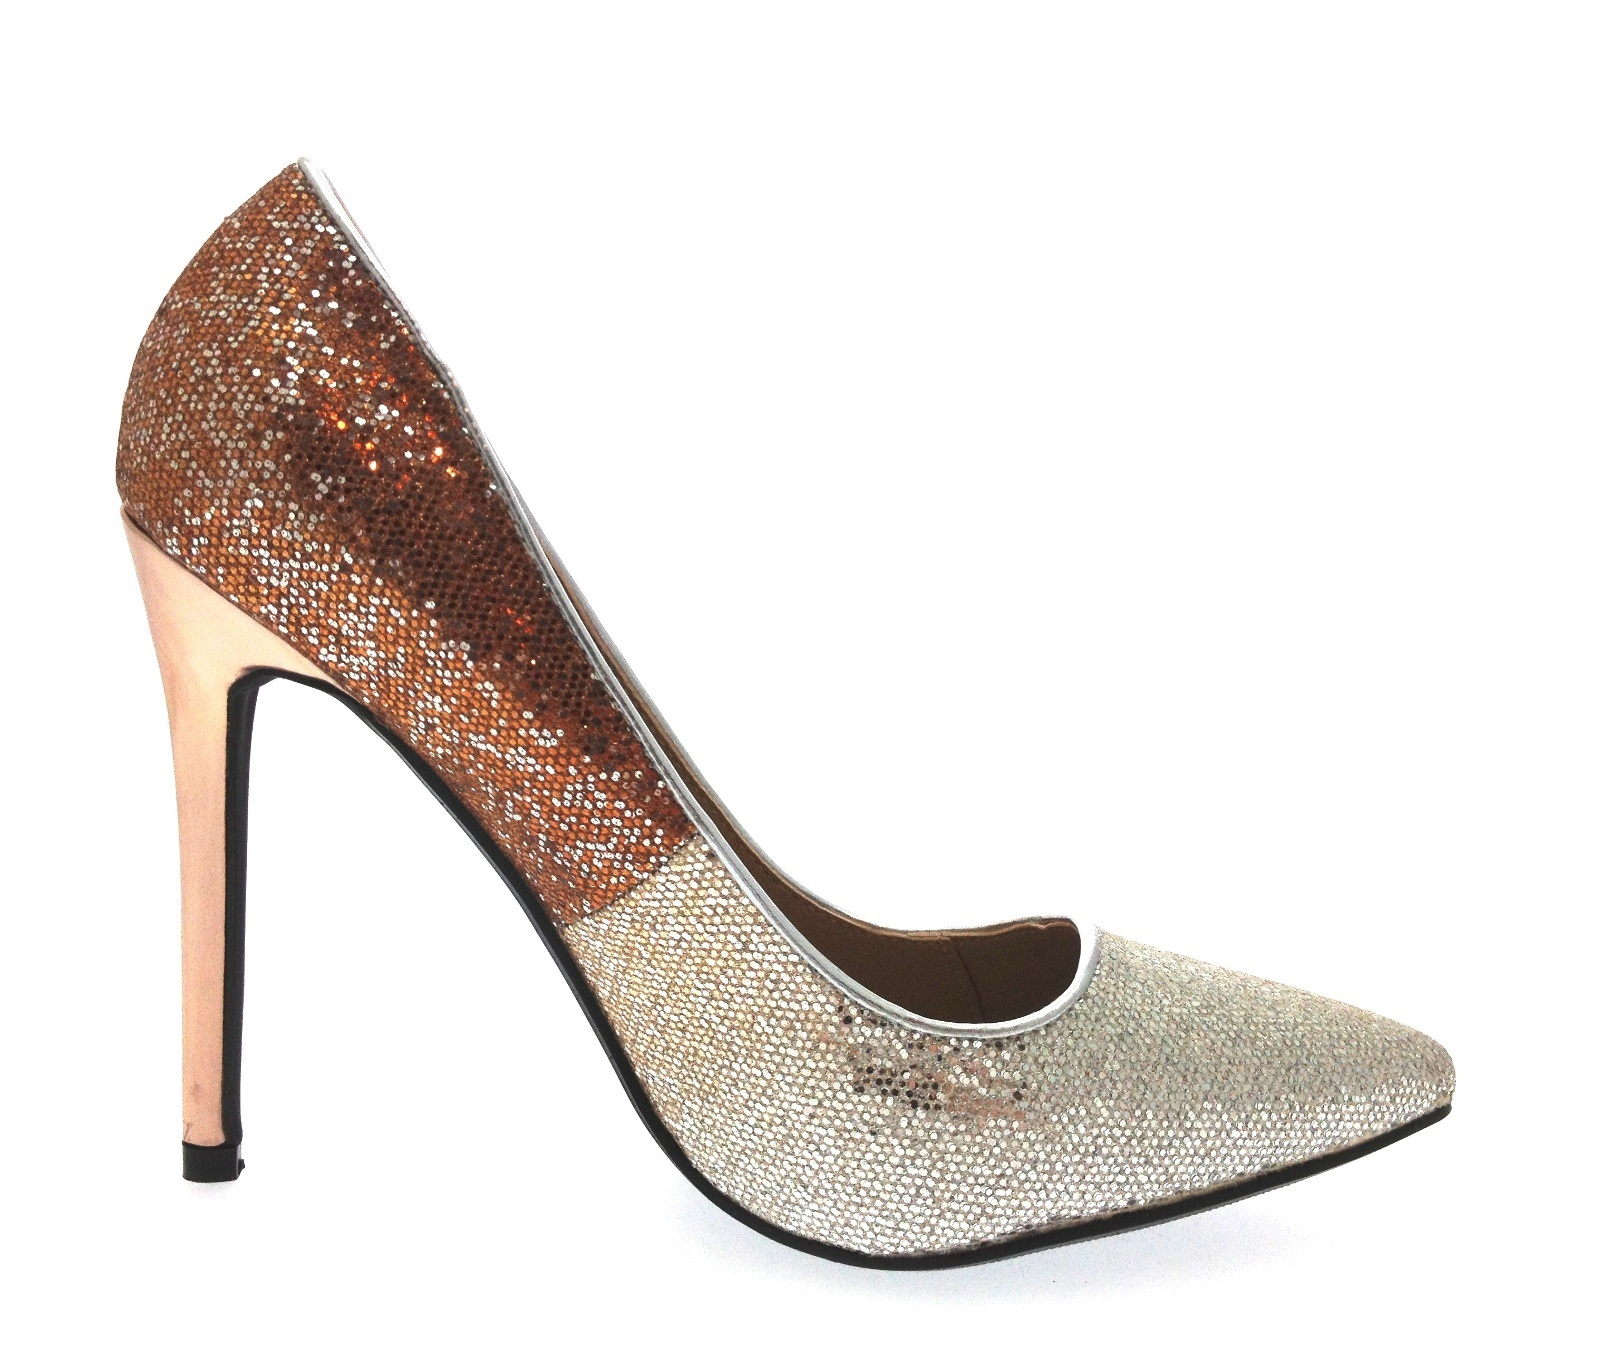 clearance recommend eastbay for sale Silver glittered high stiletto heel court shoes online cheap M2lvBNmb